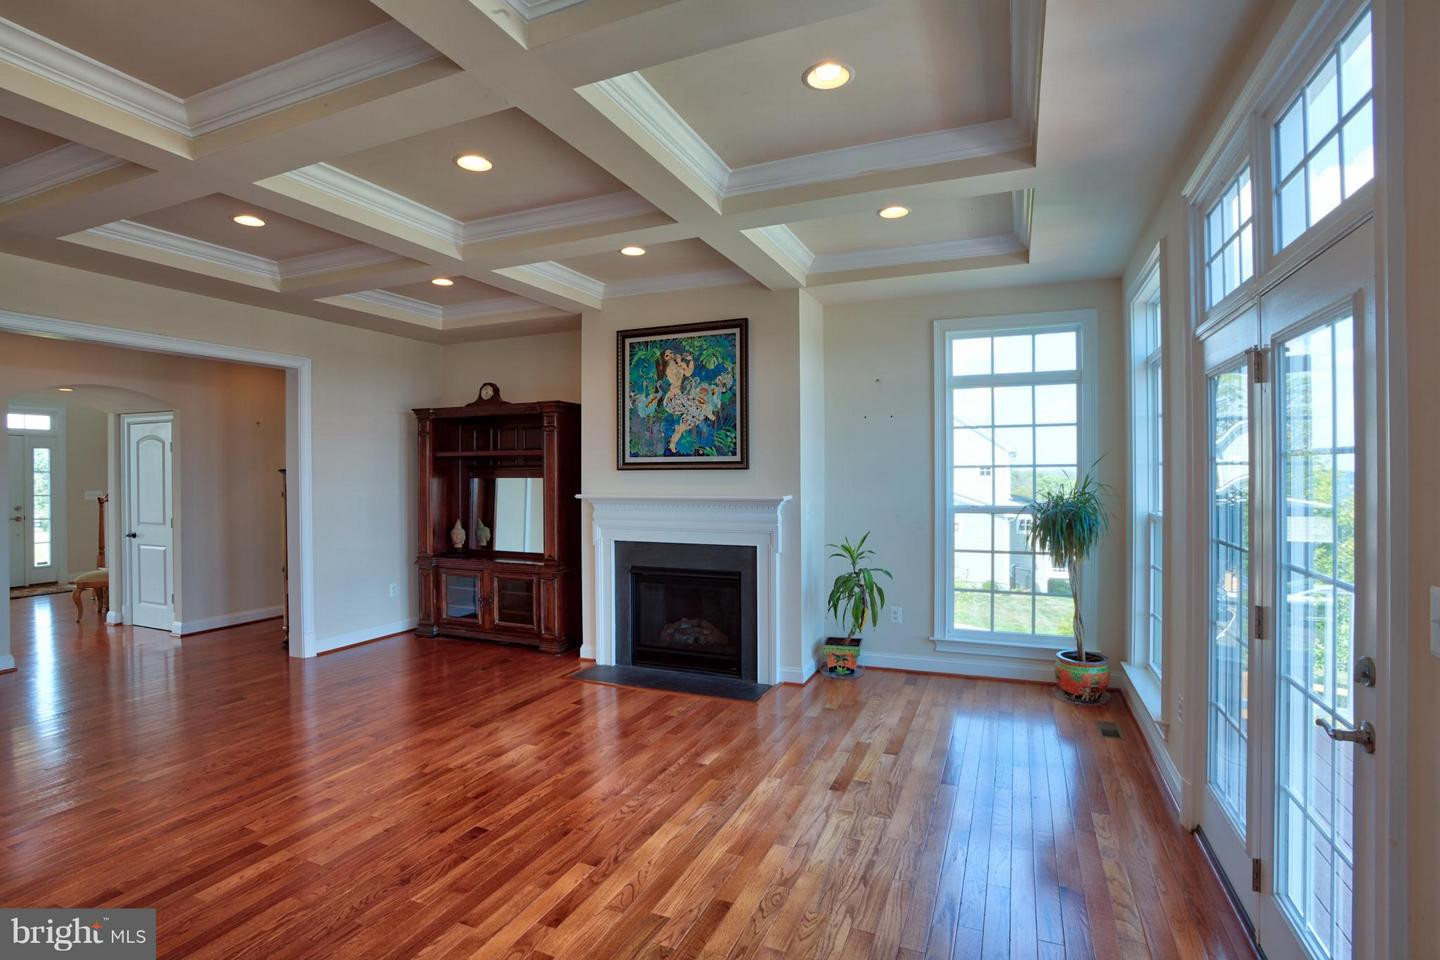 manny hardwood floors bridgeport ct of carrington homes homes for sale all loudoun county homes within bright mris resall 300584142694 8